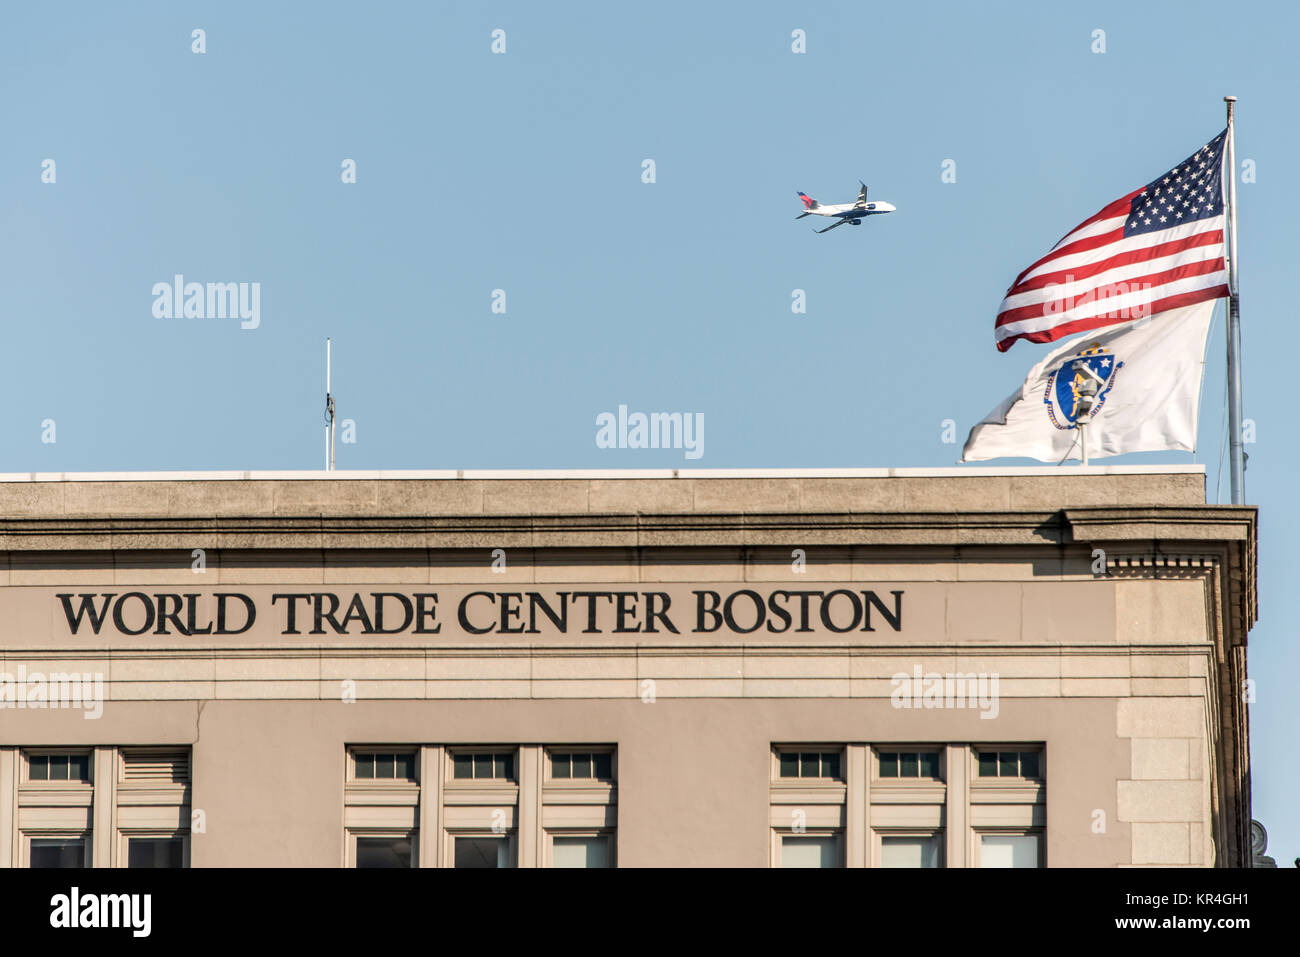 BOSTON, USA - 05.09.2017 Seaport World Trade Center in Boston The building is located on the Boston waterfront at - Stock Image